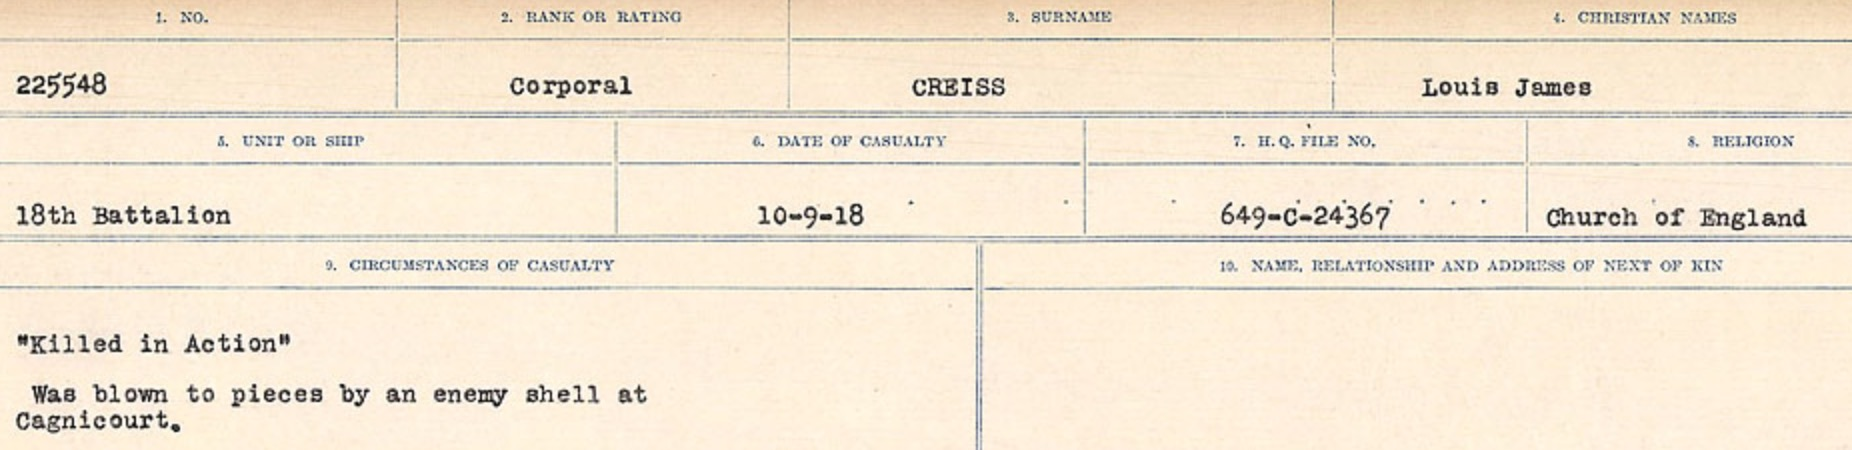 Circumstances of death registers – Source: Library and Archives Canada. CIRCUMSTANCES OF DEATH REGISTERS, FIRST WORLD WAR Surnames: CRABB TO CROSSLAND Microform Sequence 24; Volume Number 31829_B016733. Reference RG150, 1992-93/314, 168. Page 467 of 788.